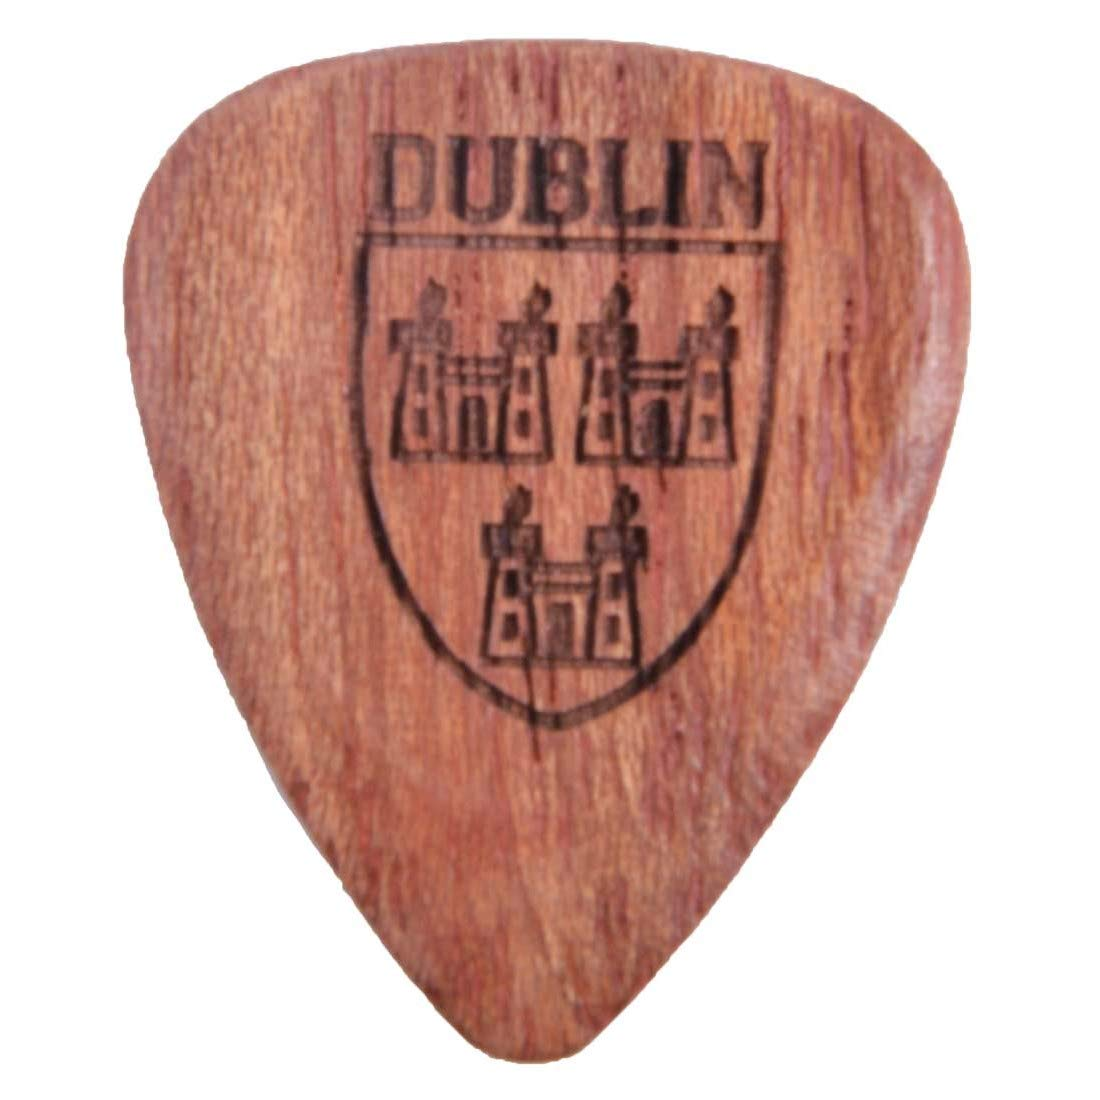 Solid Wooden Guitar Pick With Dublin Crest Design Brown Colour Carrolls Irish Gifts